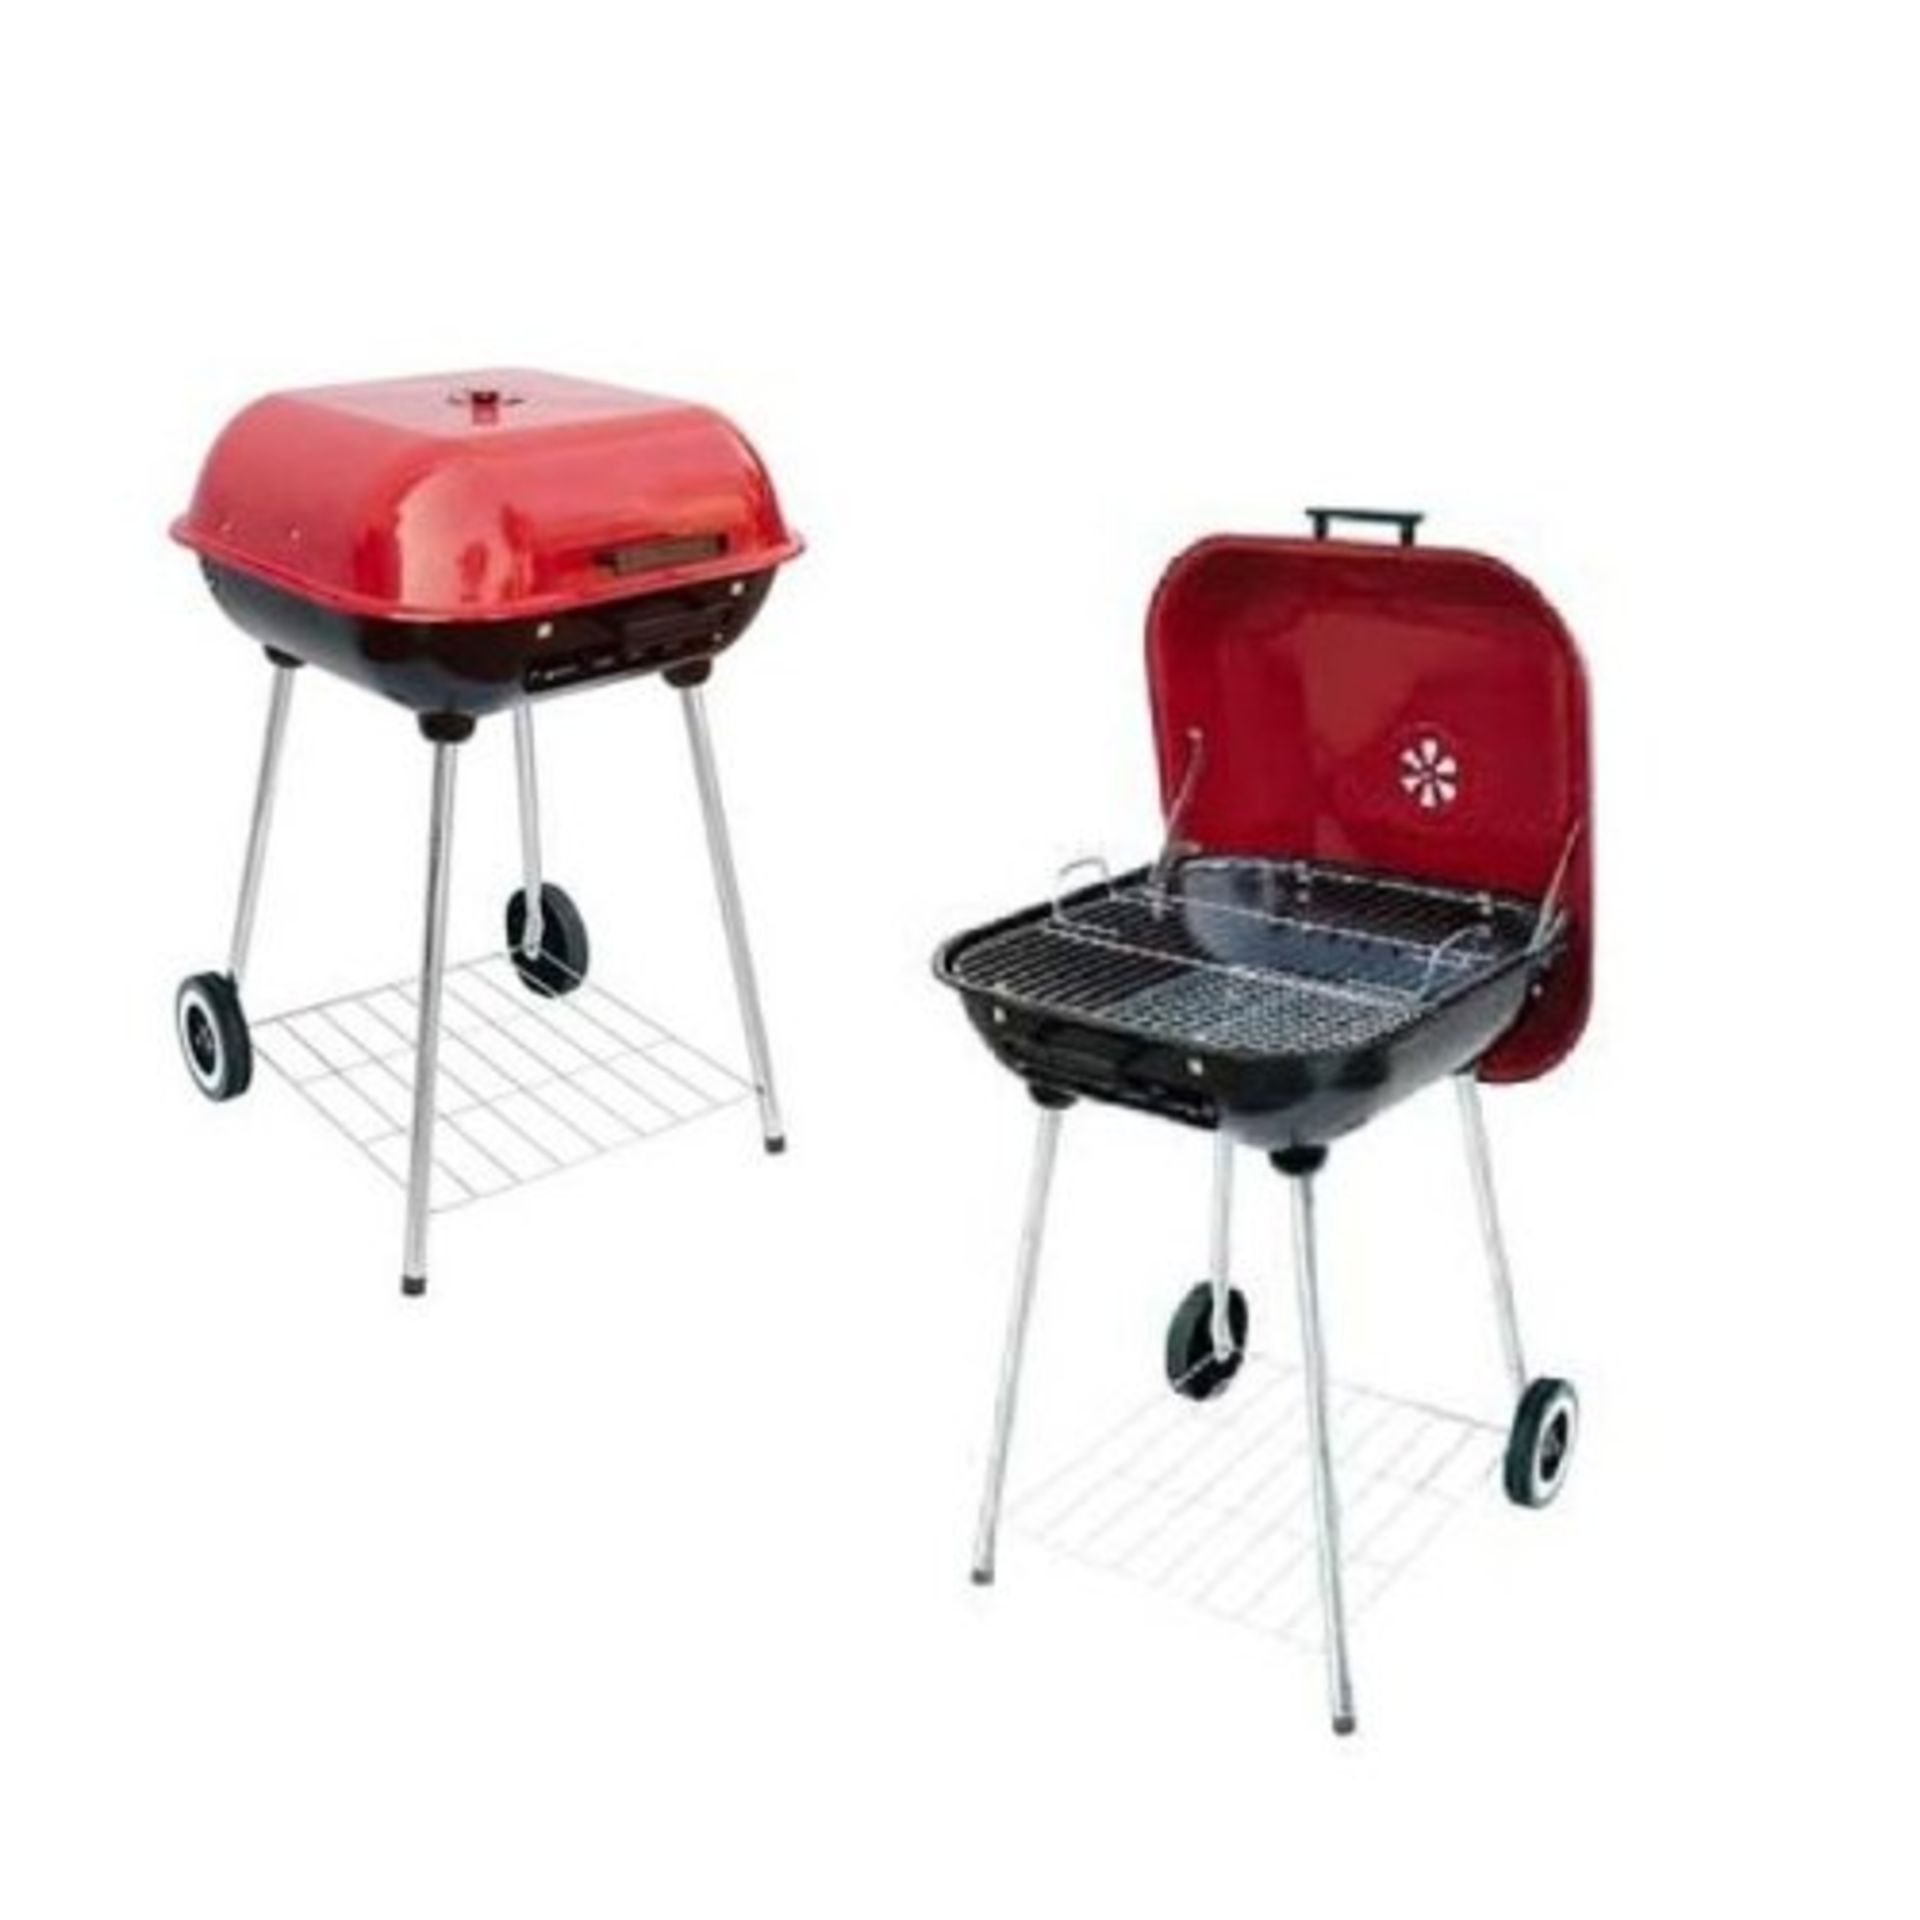 Lot 31891 - V Brand New Mastercook 54cm Stainless Steel Charcoal Barbecue With Red Top